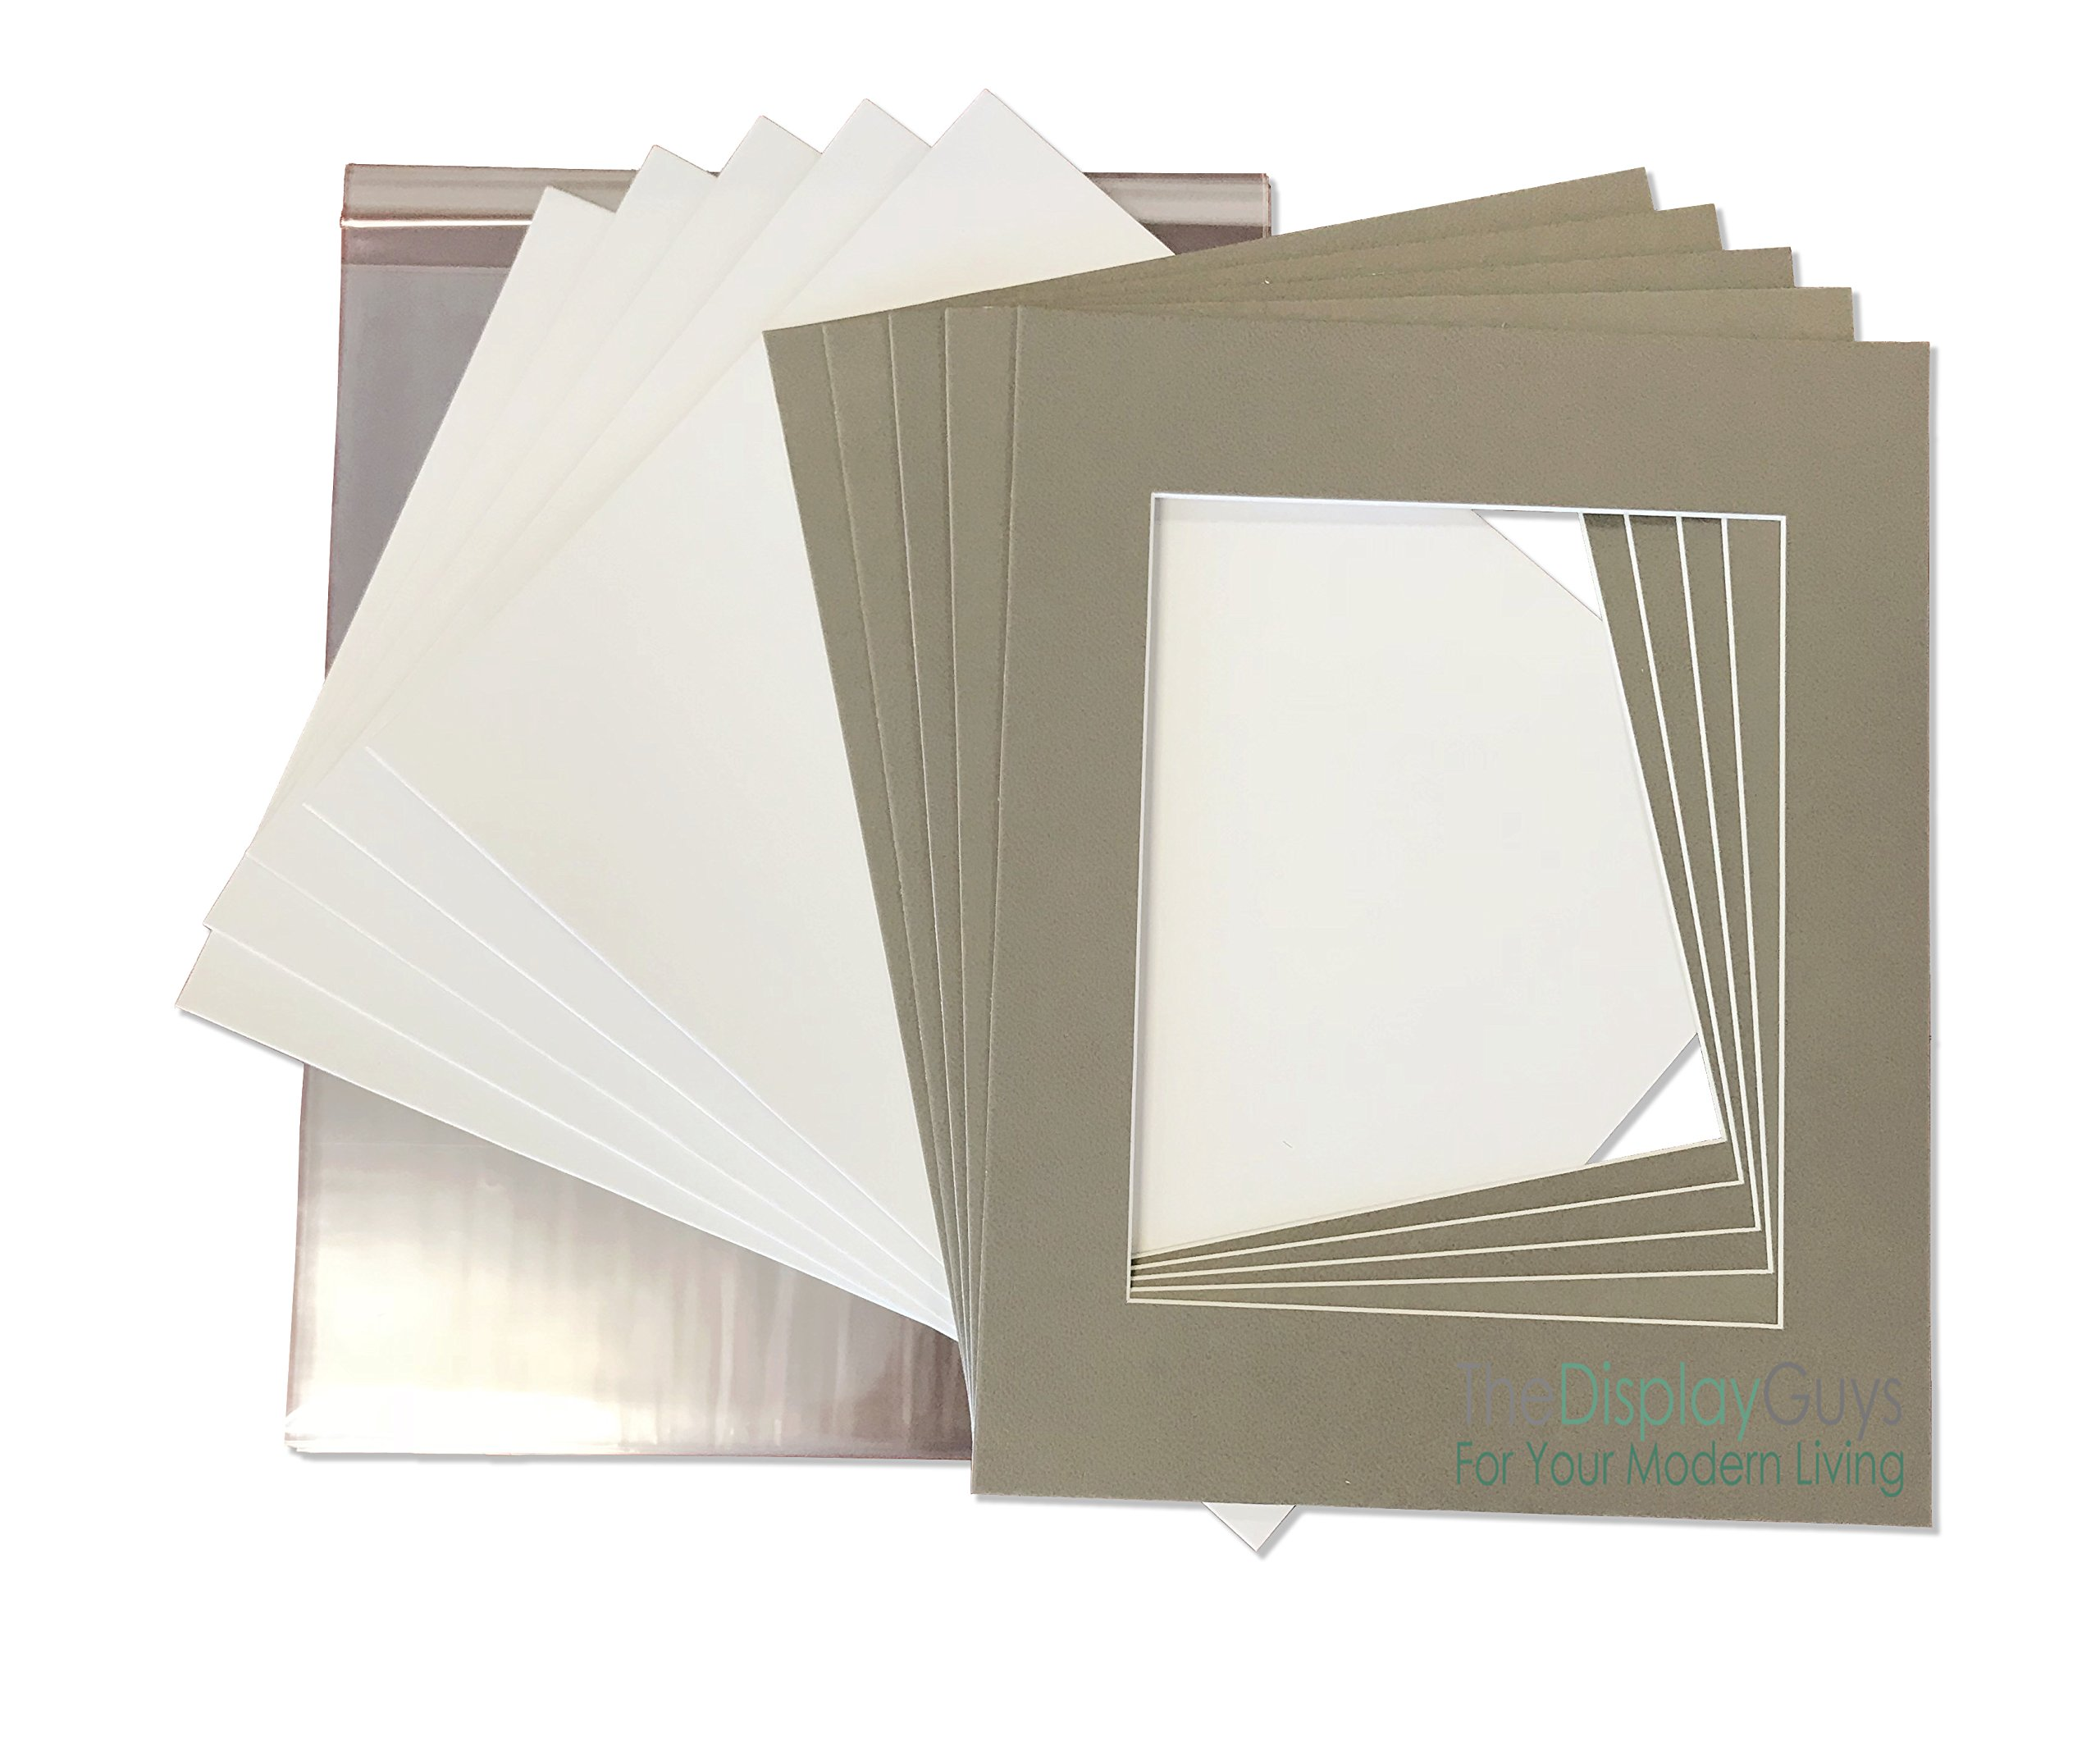 THE DISPLAY GUYS 16x20 Pack of 25 Textured Gray Picture Photo Matting Mat Boards + Backing Boards + Clear Plastic Bags Complete Set